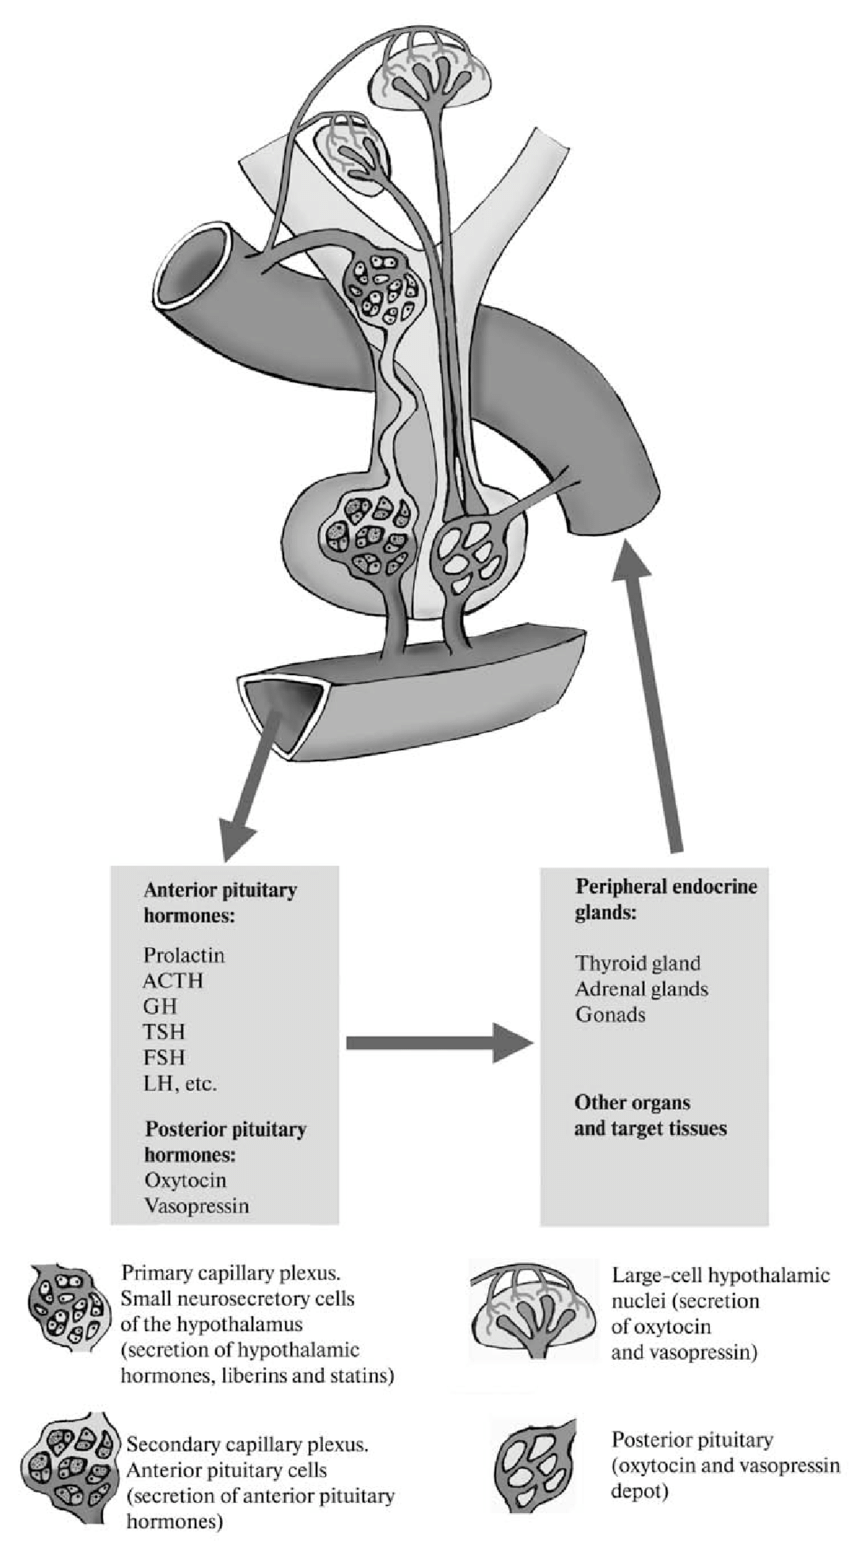 medium resolution of structure and function of the hypothalamus pituitary gland peripheral endocrine glands system scheme